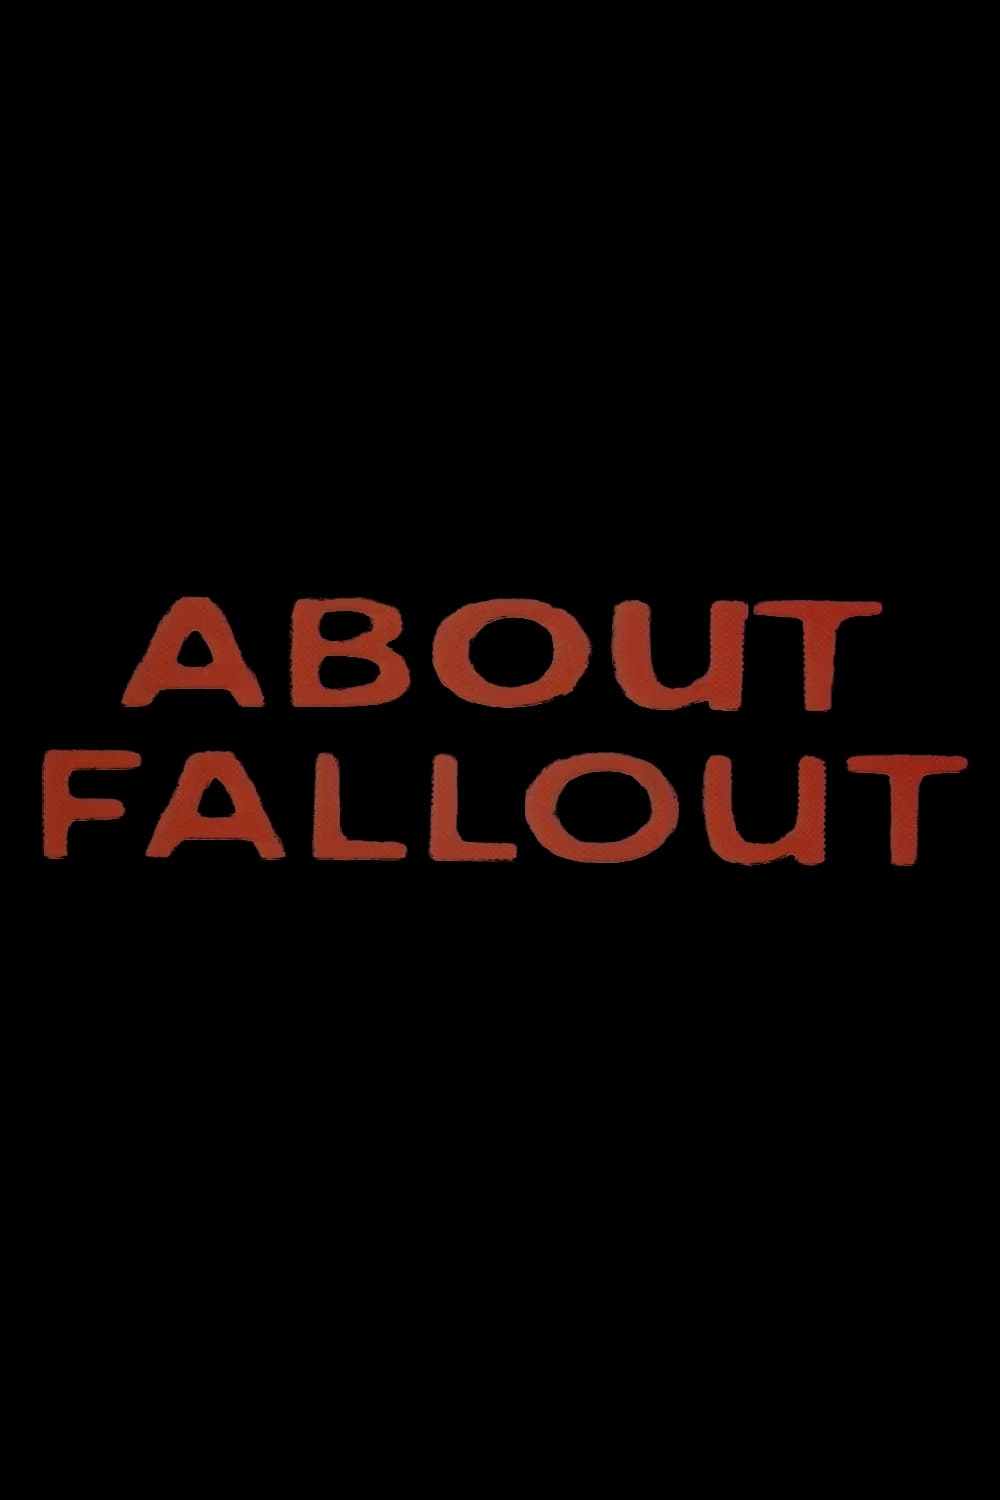 About Fallout (1955)